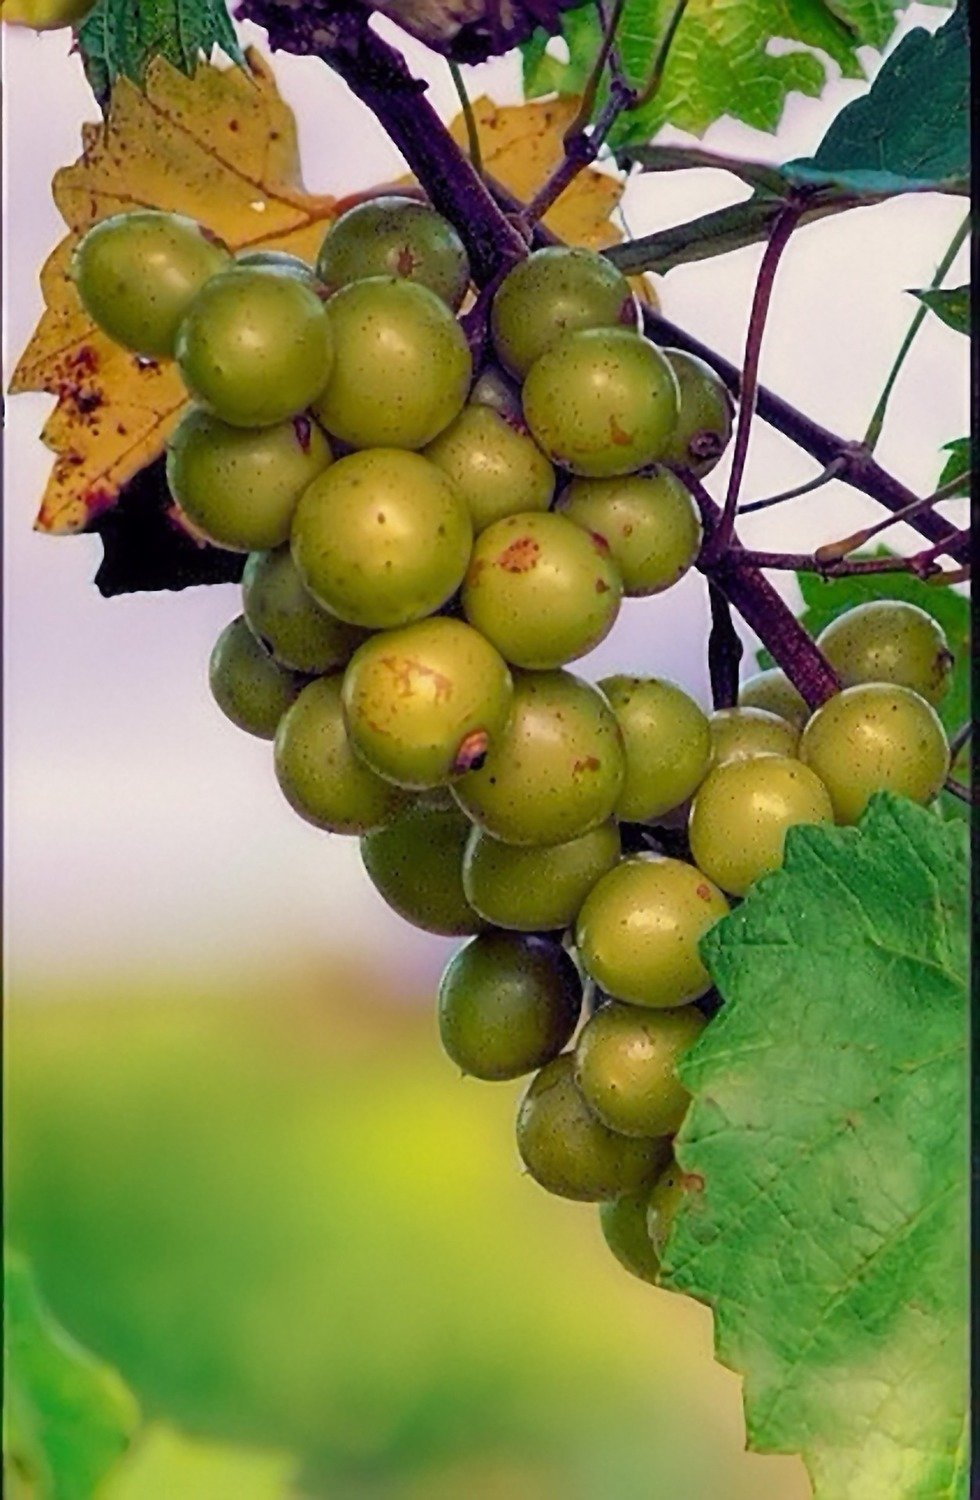 Scuppernong grapevines